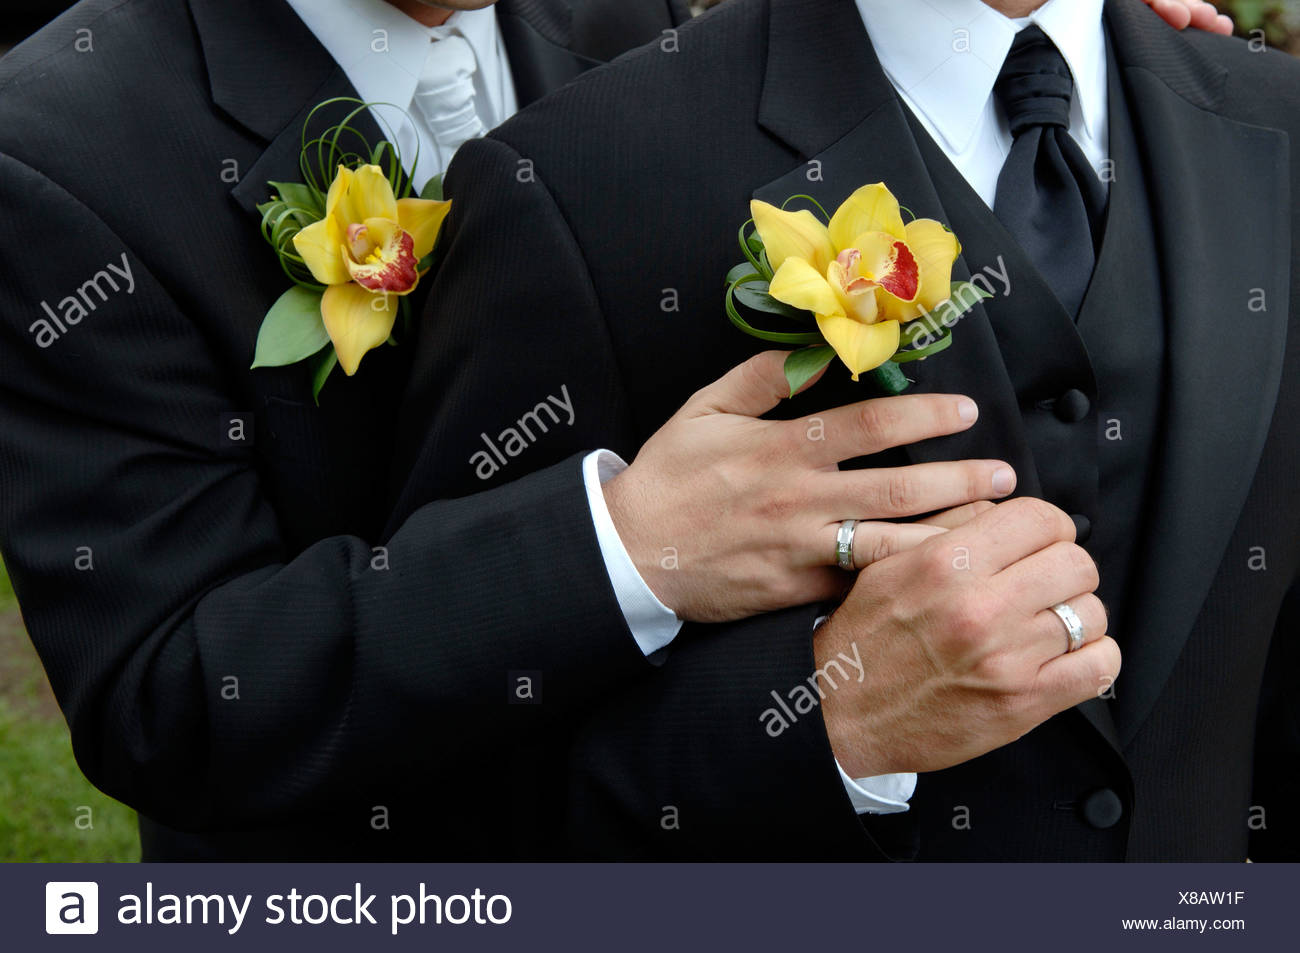 Hands of Gay Couple with Wedding Rings Stock Photo 280522299 Alamy